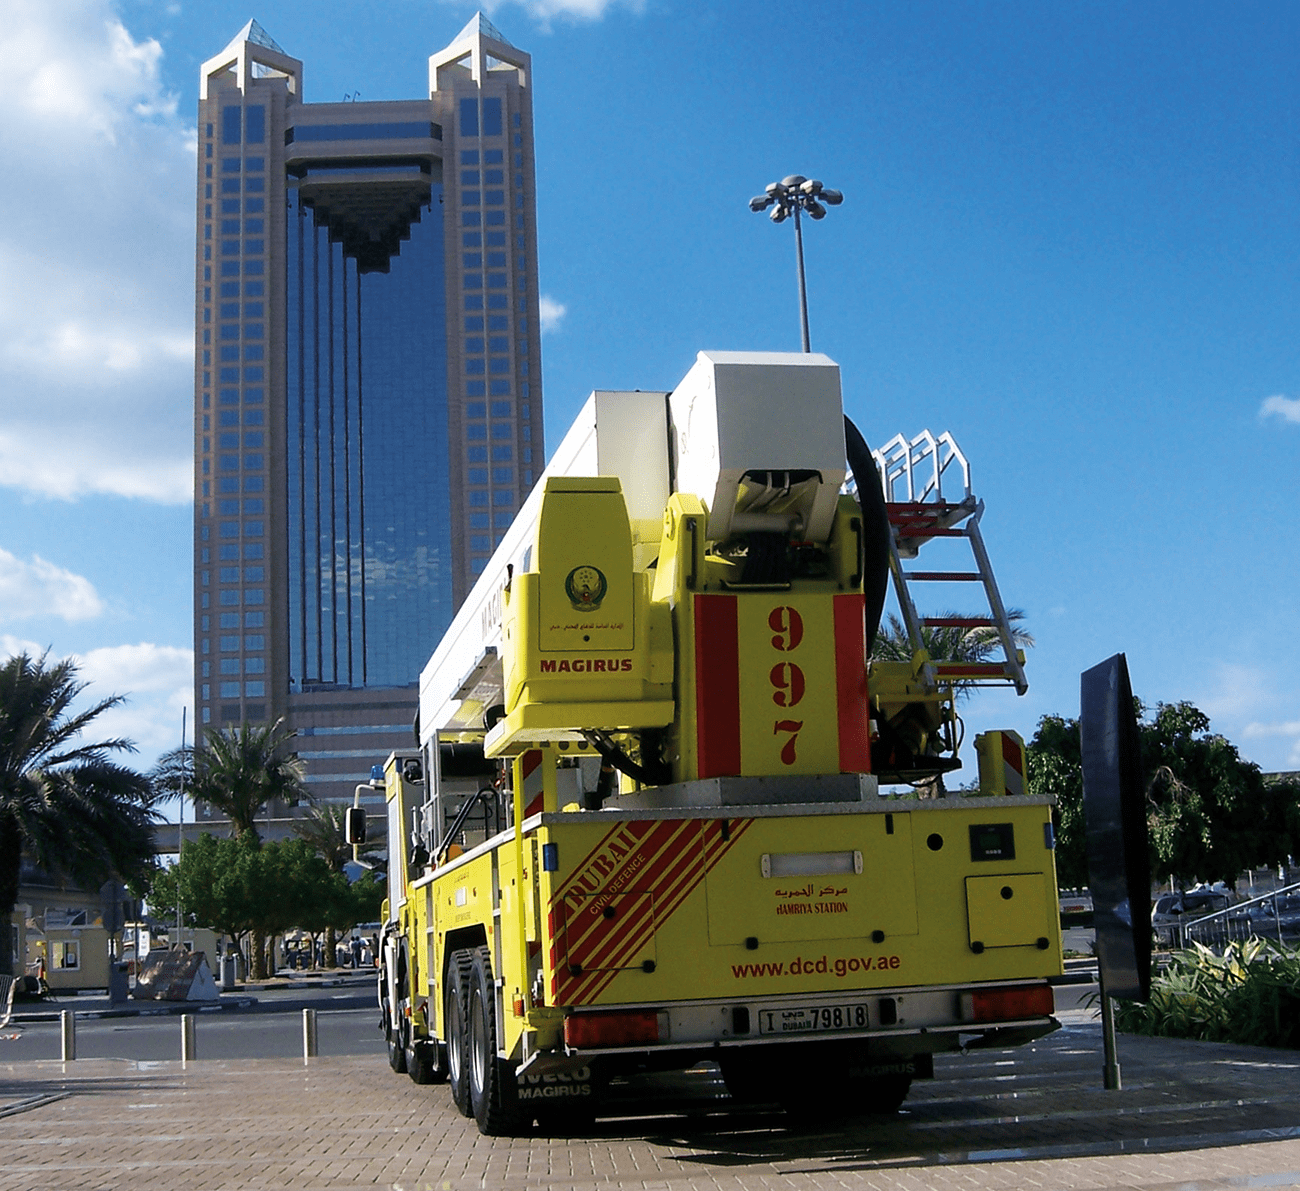 A Dubai Civil Defence 54 metre aerial ladder platform pictured outside the iconic Fairmont Hotel tall tower.